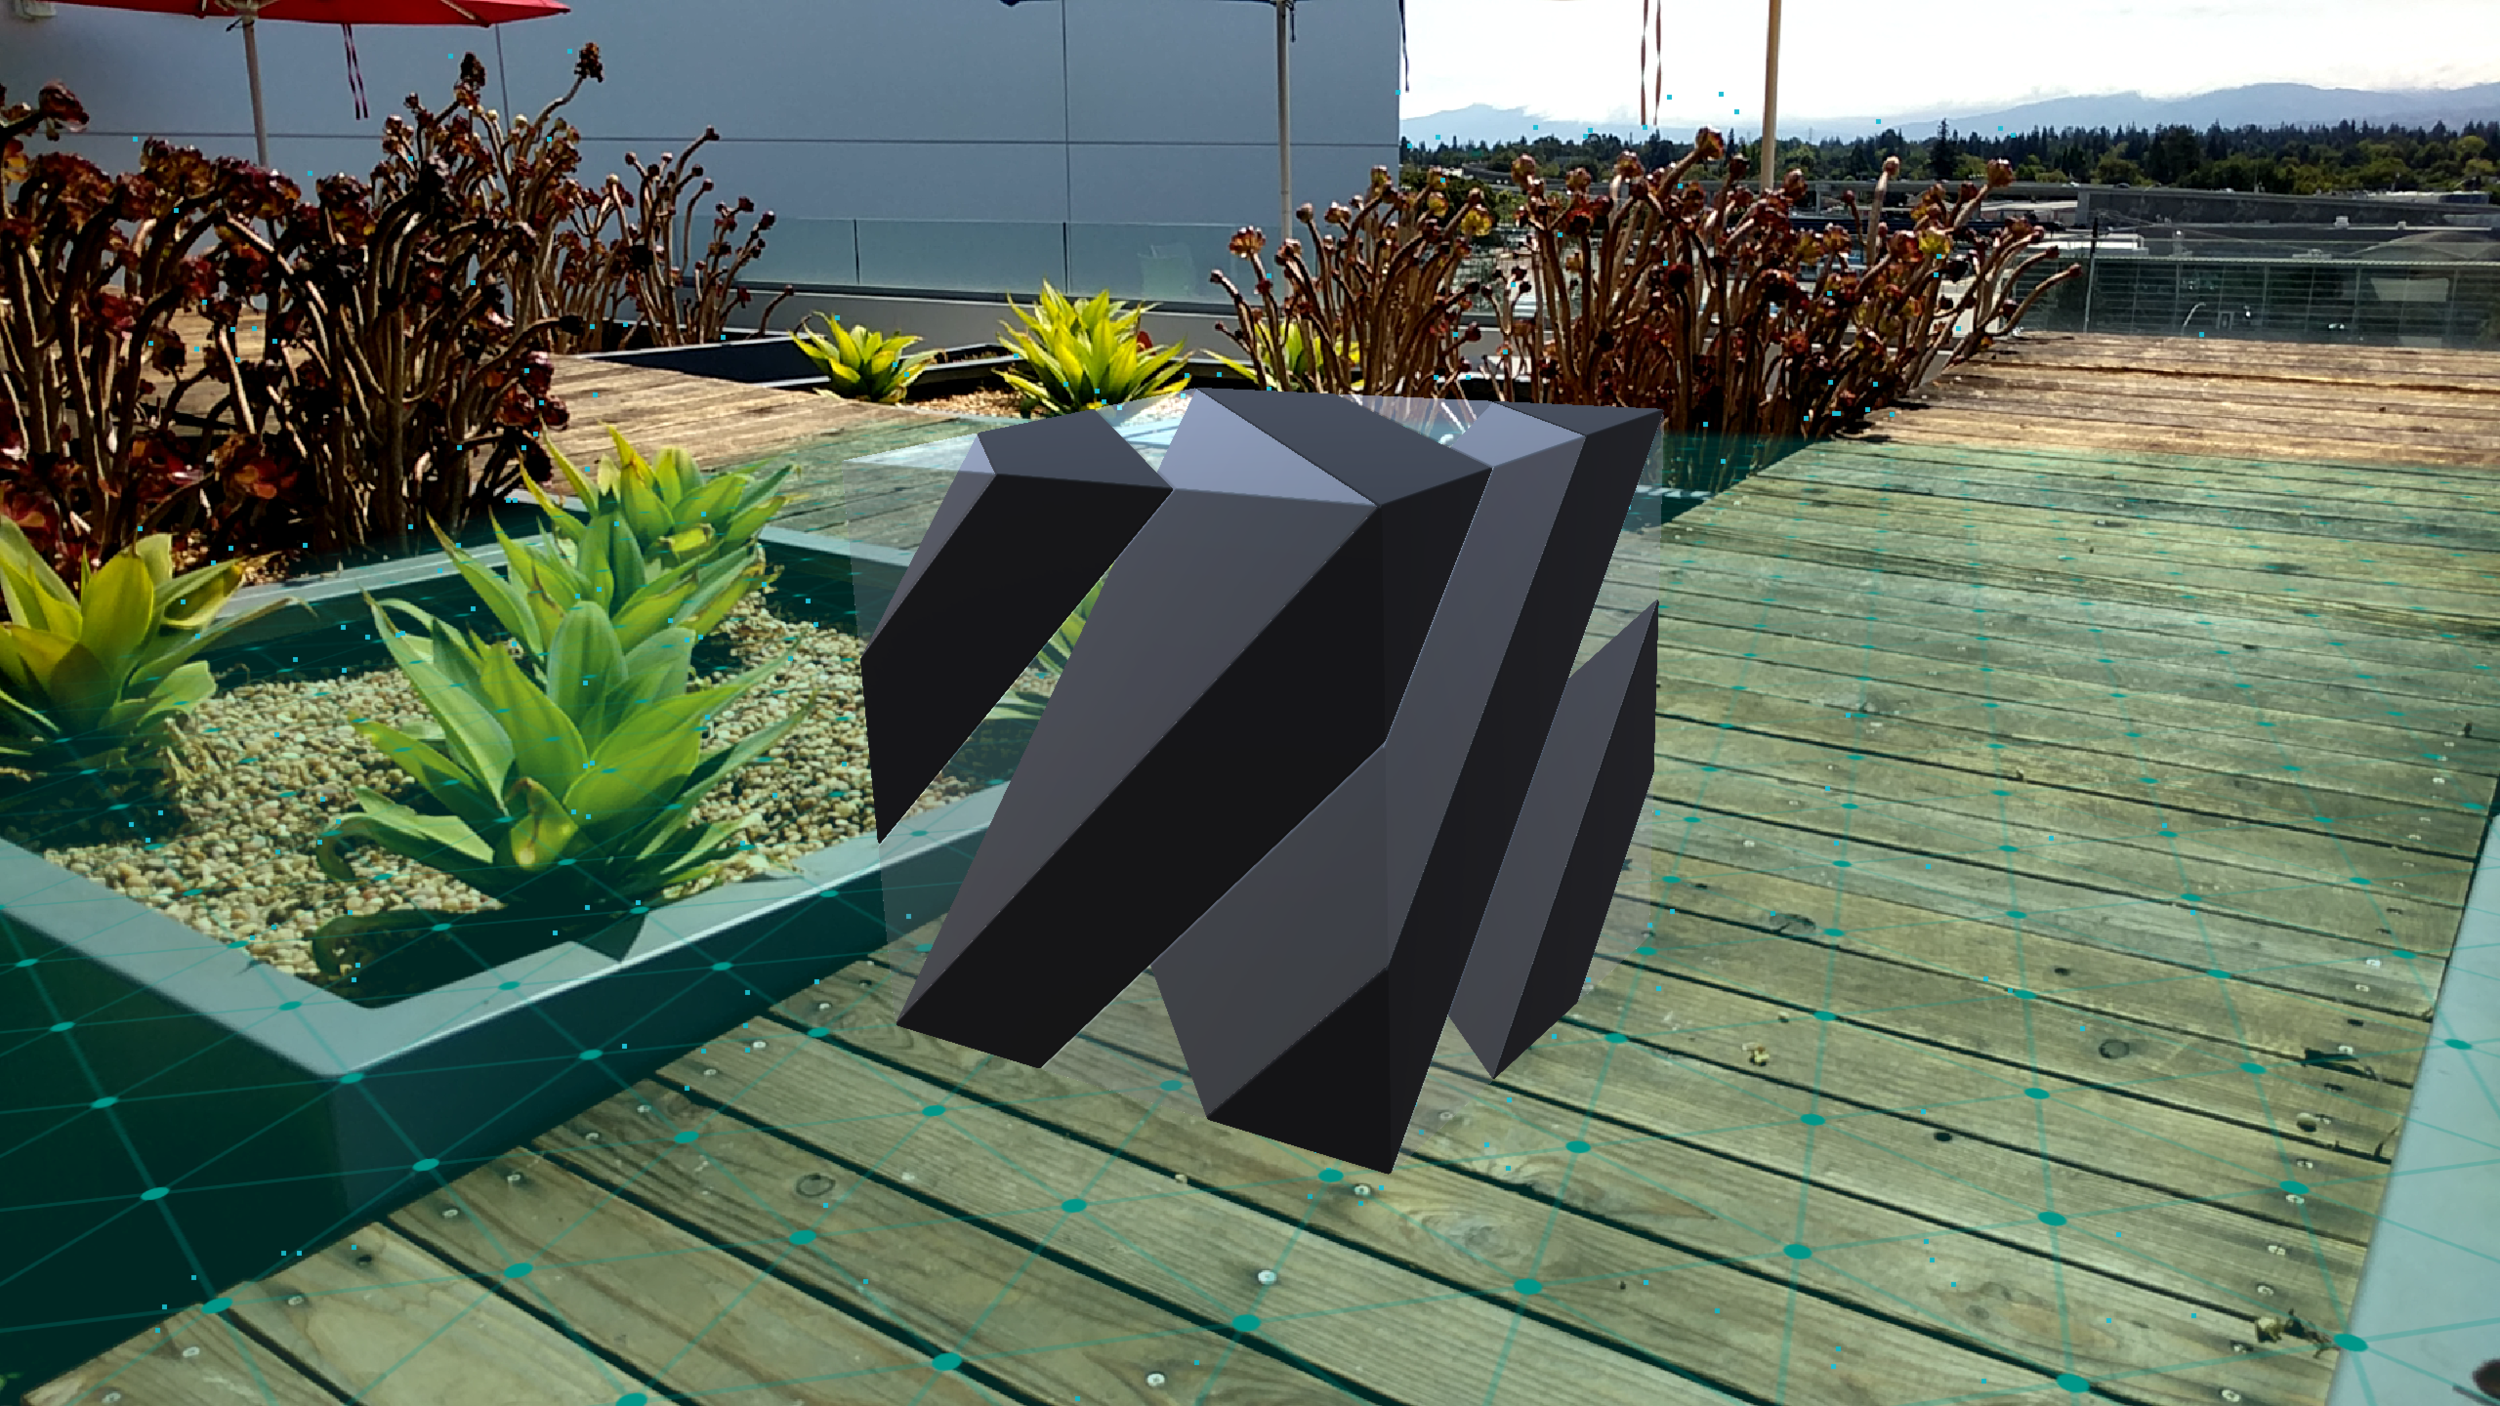 Modeling rendered on Pixel, using ARCore